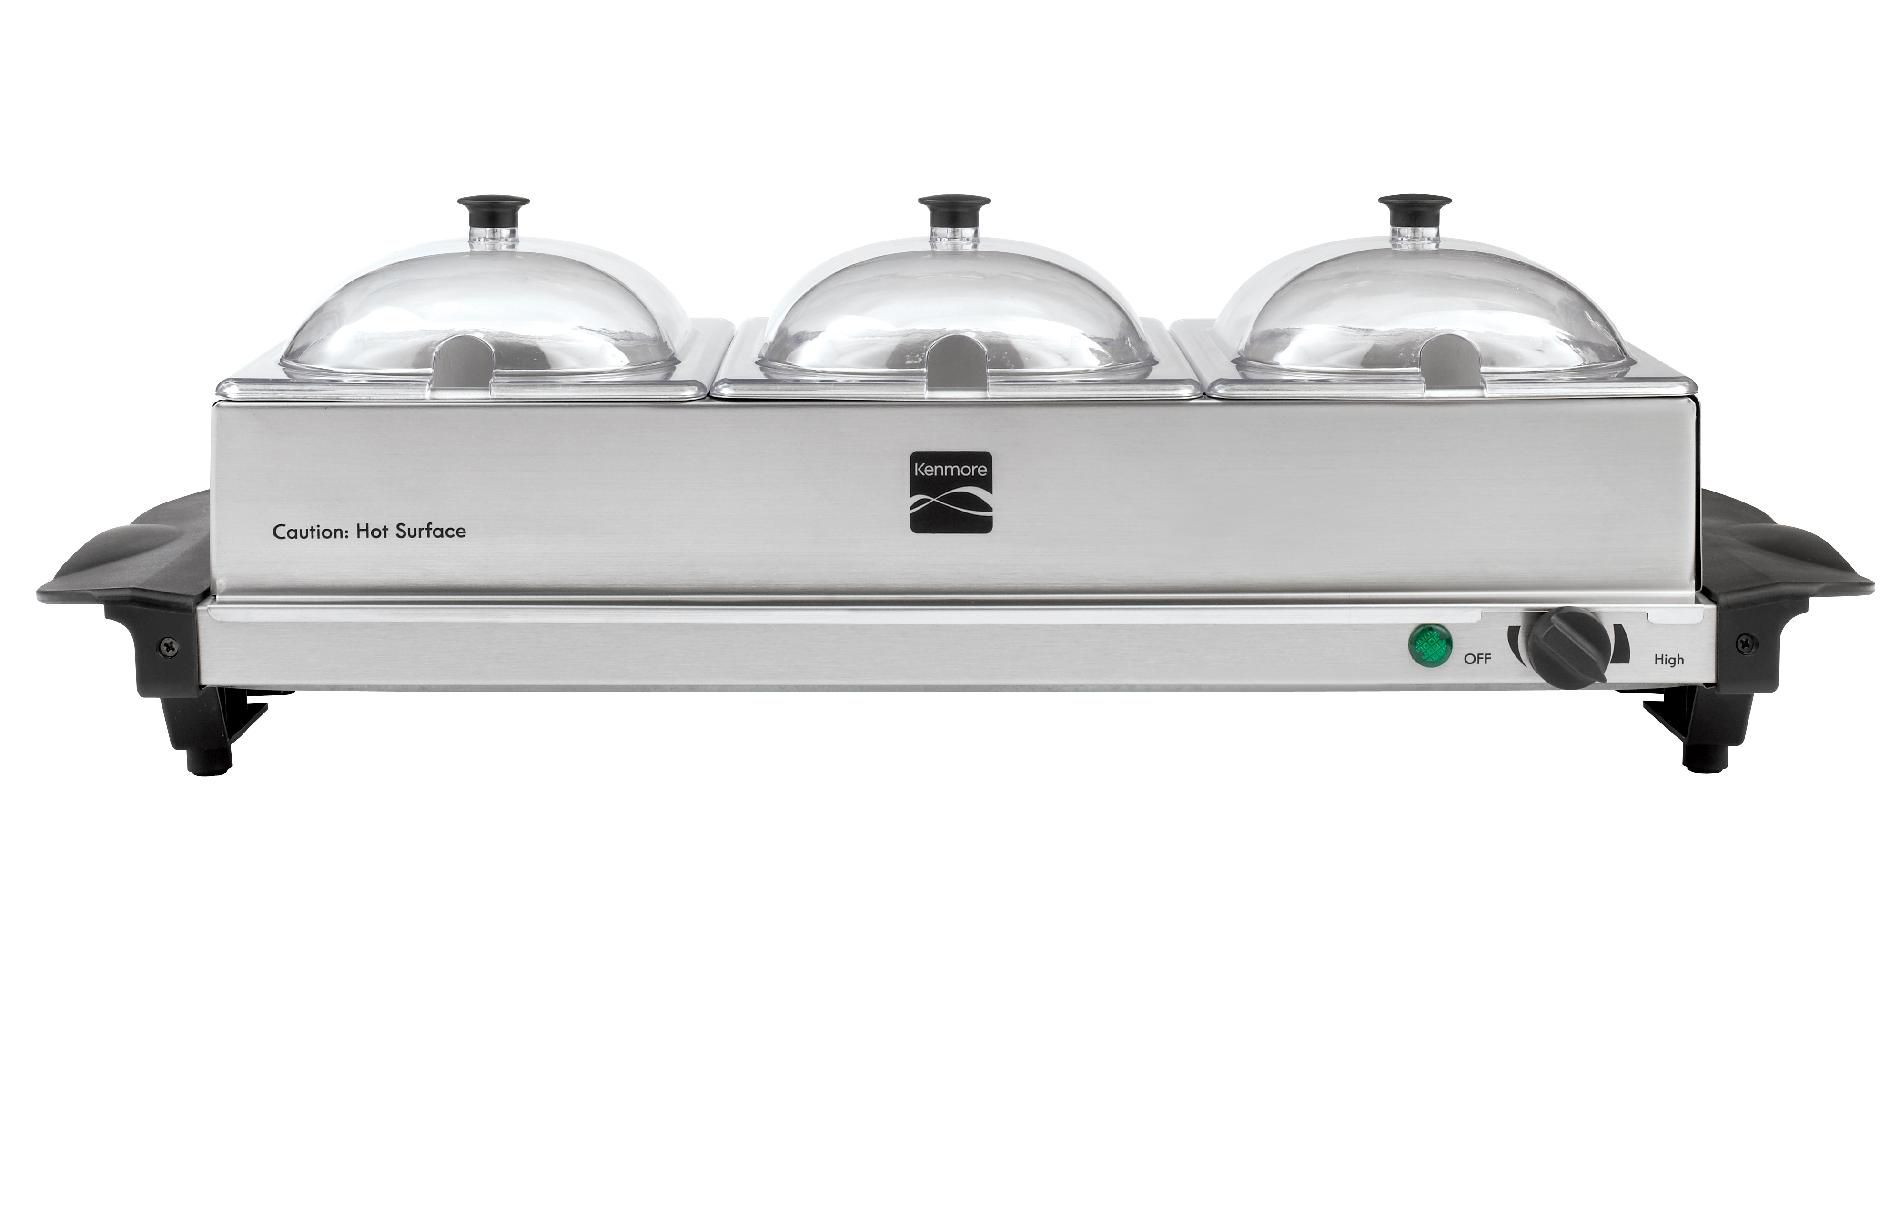 Kenmore Triple Buffet Server